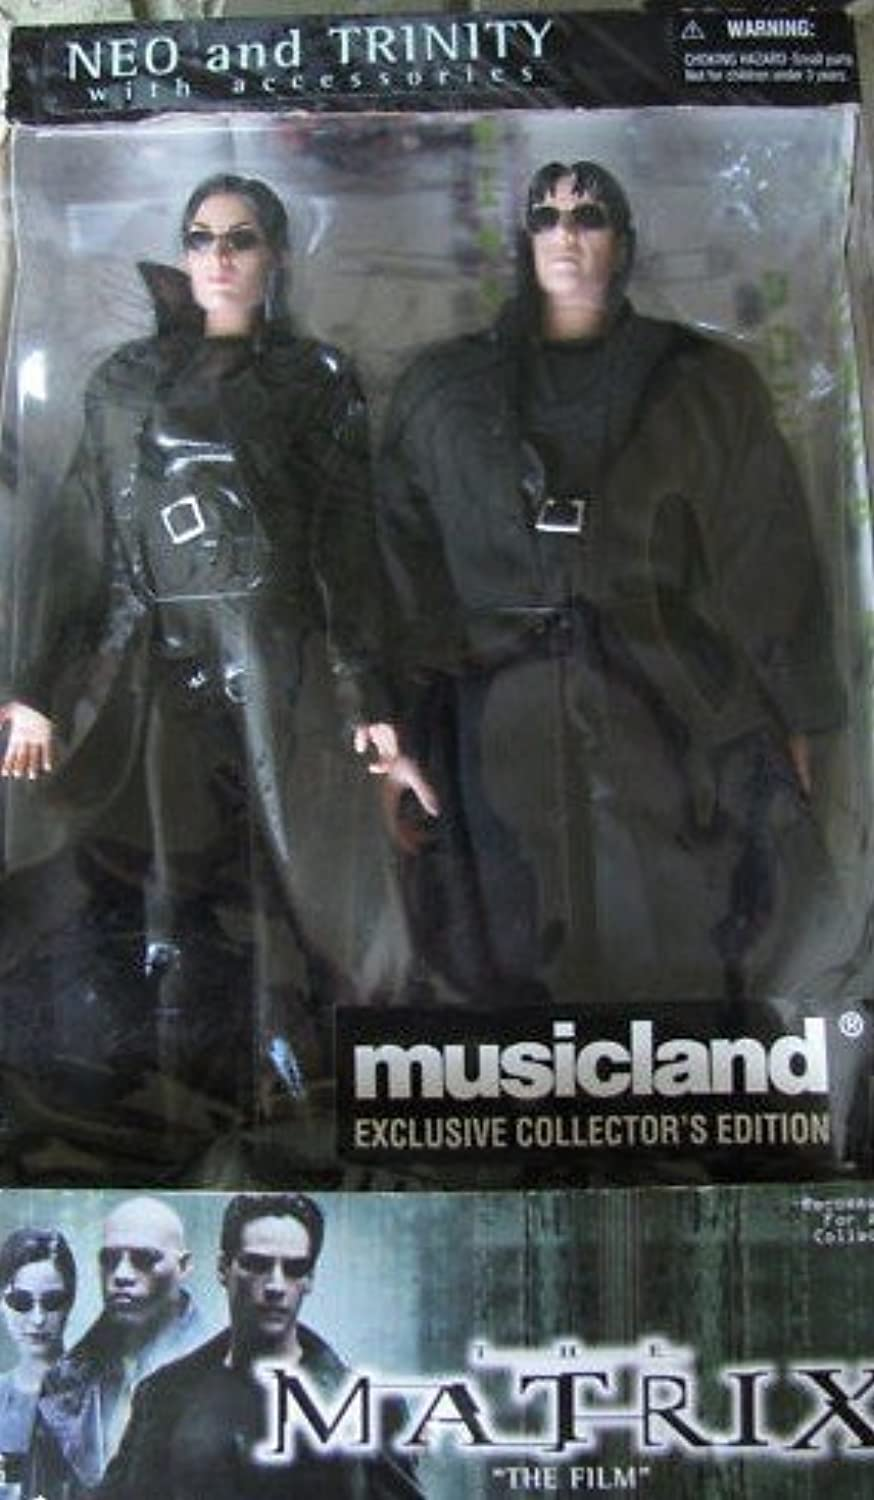 THE MATRIX NEO and TRINITY with accessories by Musicland Exclusive Collectors Edition